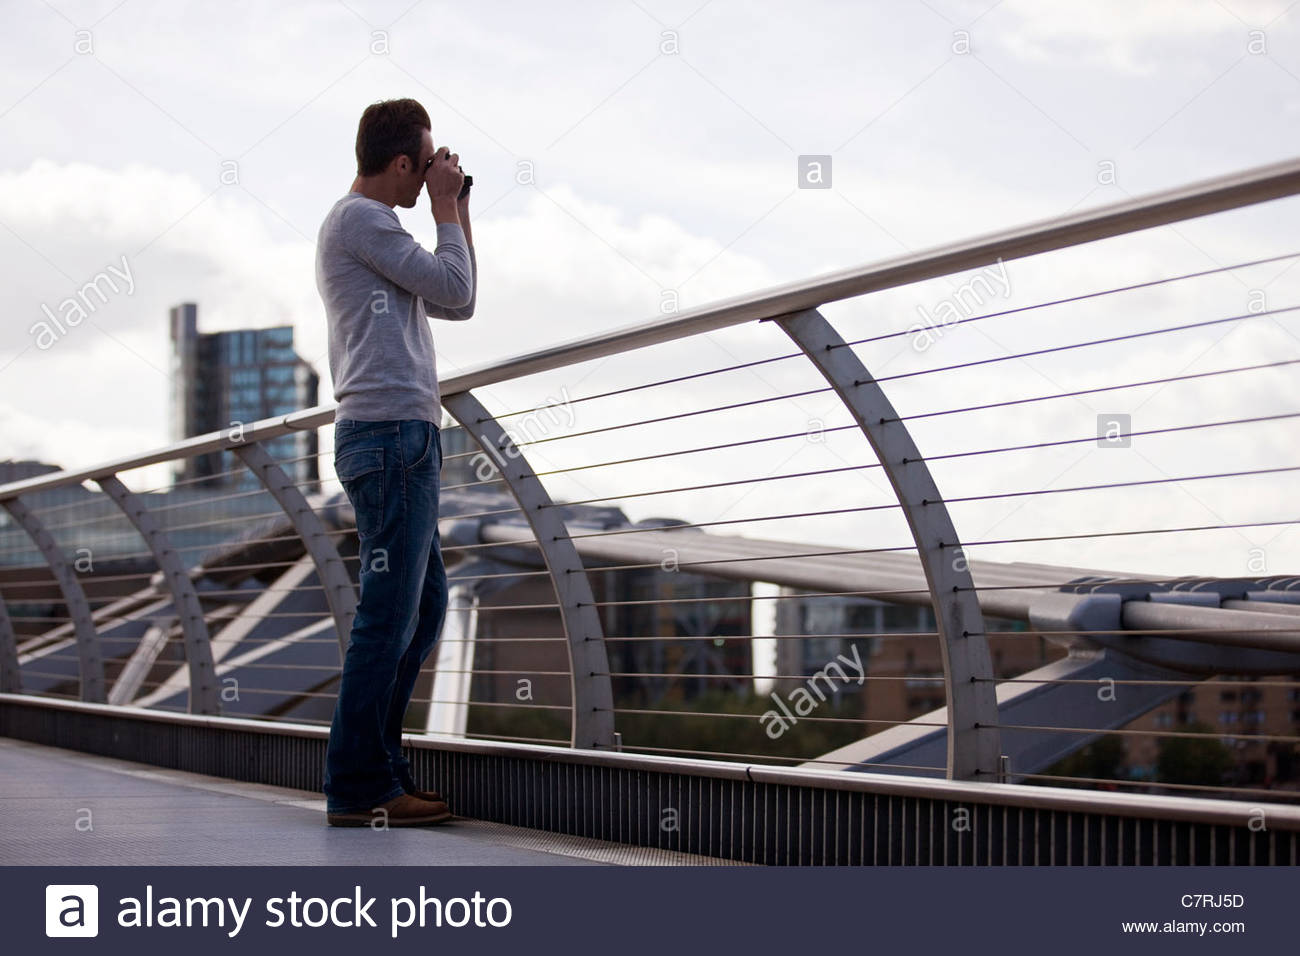 A mid-adult man standing on the Millennium Bridge, taking a photograph - Stock Image